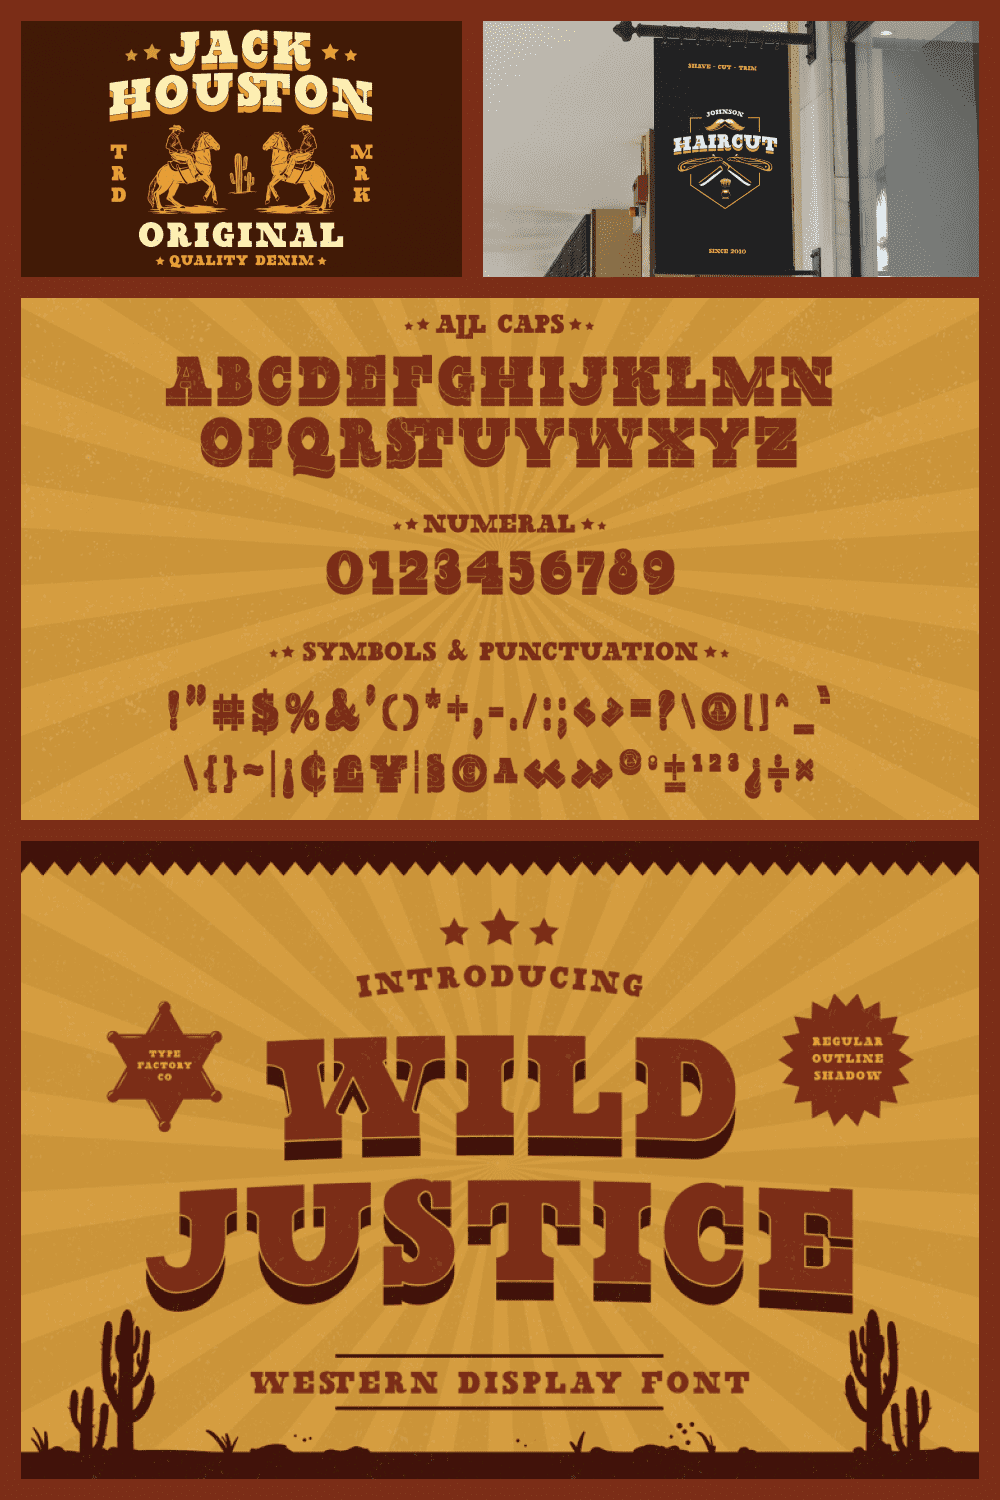 Wild font is inspired by cowboy styles.